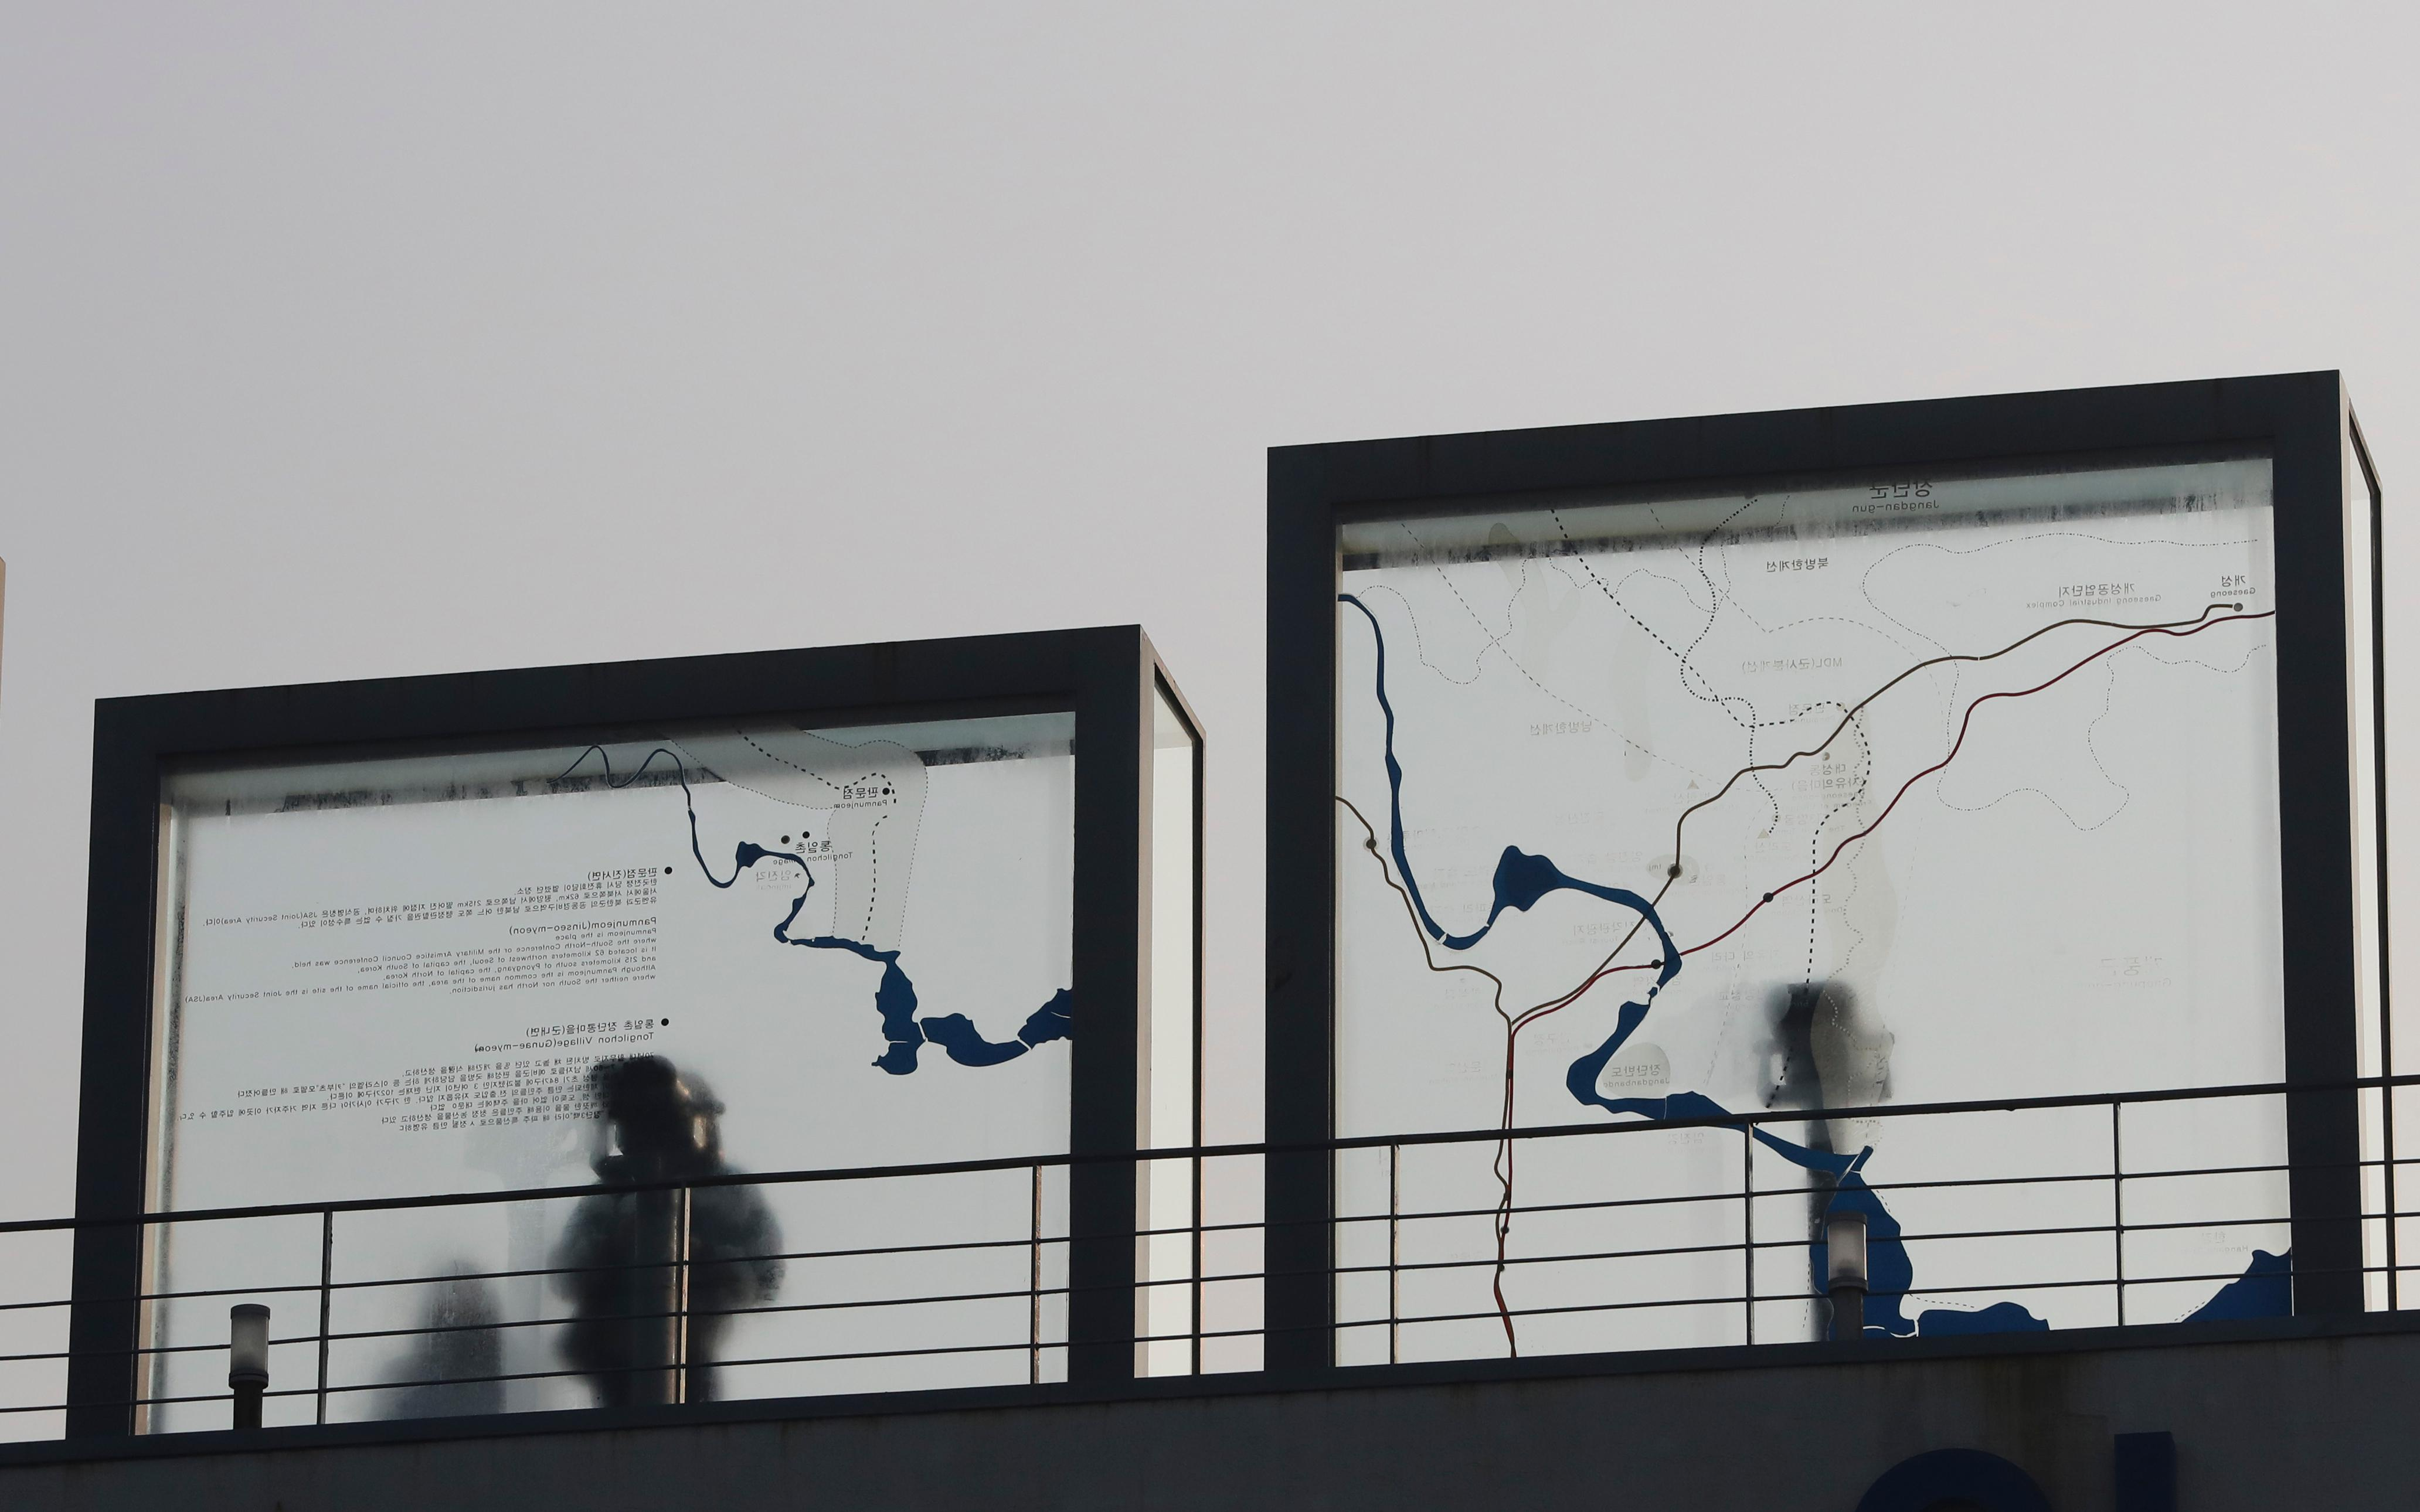 A visitor watches the north side through the glass showing a map of Panmunjom where the place for two Koreas meeting, at the Imjingak Pavilion in Paju, South Korea, Wednesday, Jan. 17, 2018. The two Koreas are meeting Wednesday for the third time in about 10 days to continue their discussions on Olympics cooperation, days ahead of talks with the IOC on North Korean participation in the upcoming Winter Games in the South. (AP Photo/Lee Jin-man)